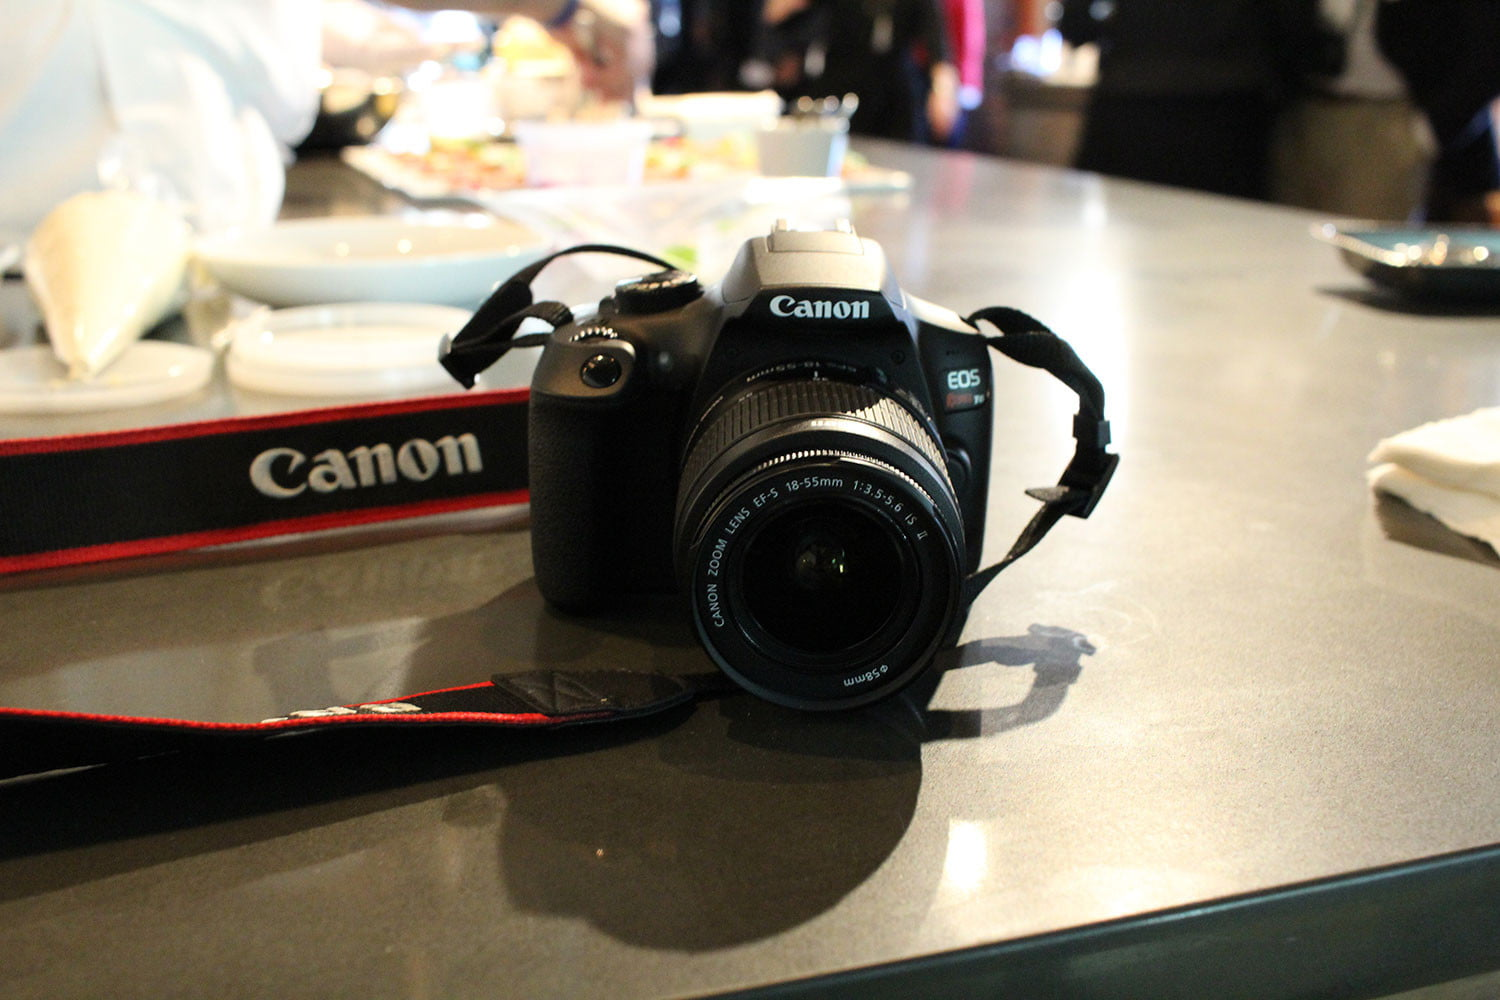 Canon Eos Rebel T6 Hands On Review Digital Trends 1300d With Lens 18 55mm Is Ii